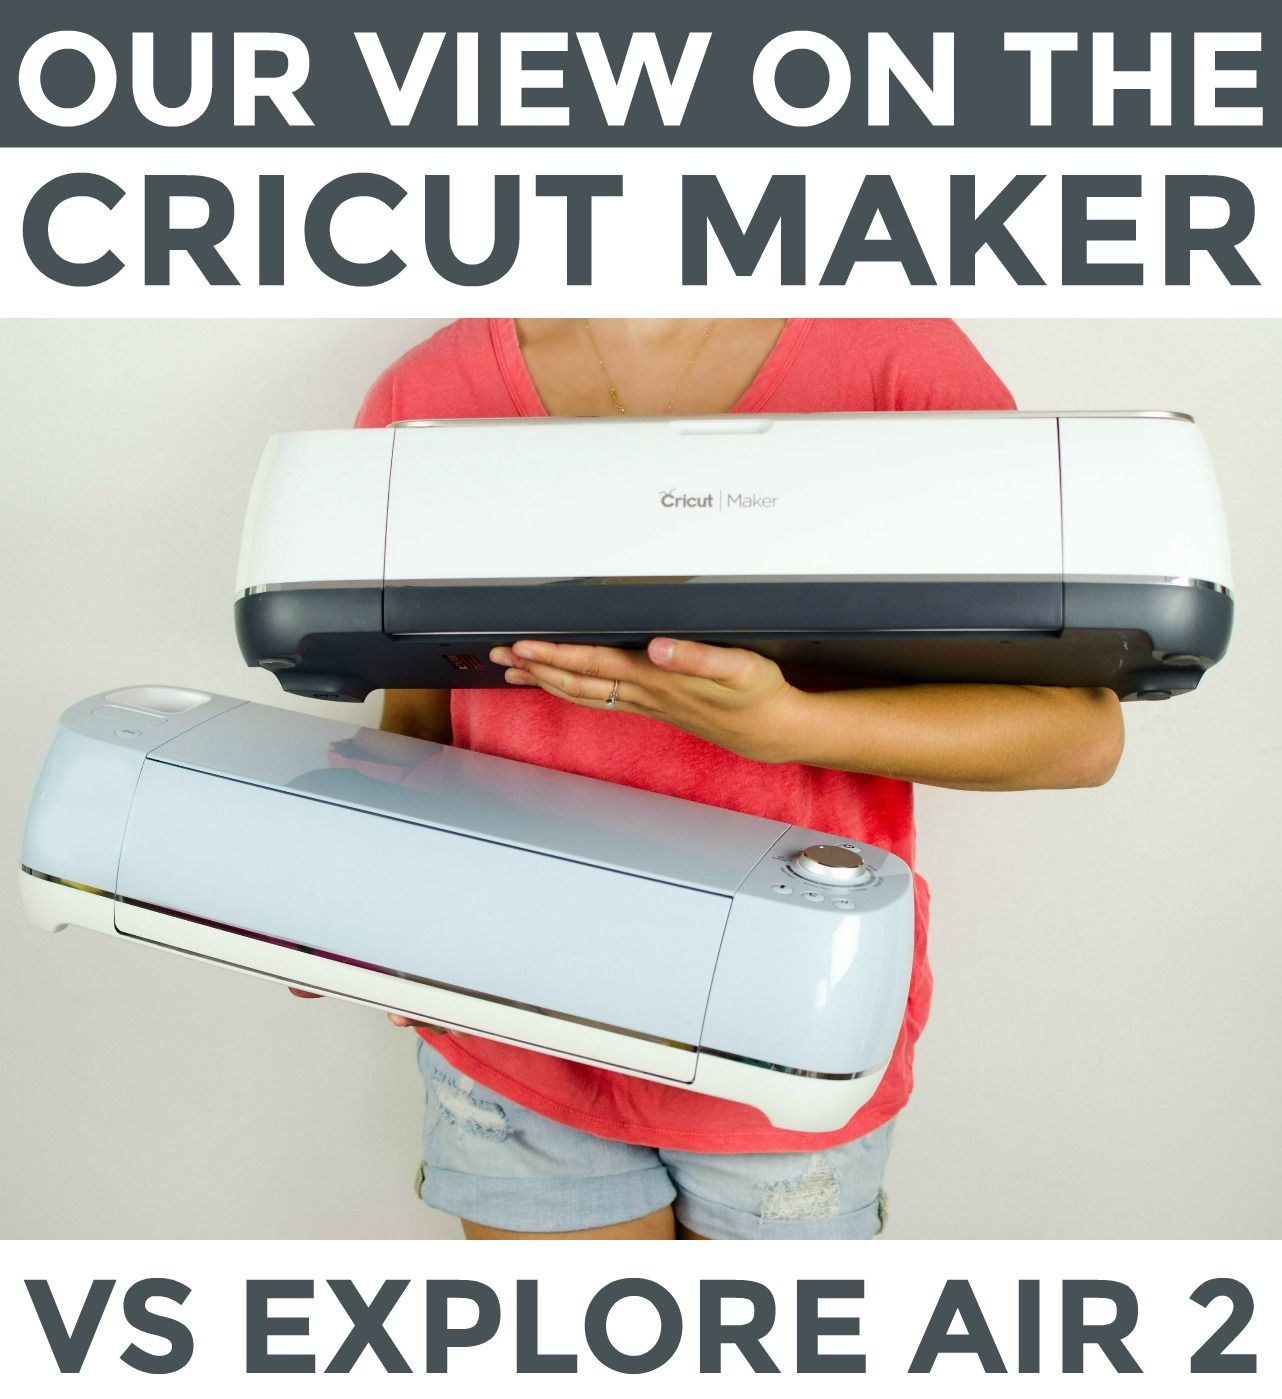 Our View On The Cricut Maker vs. Explore Air 2 Cricut